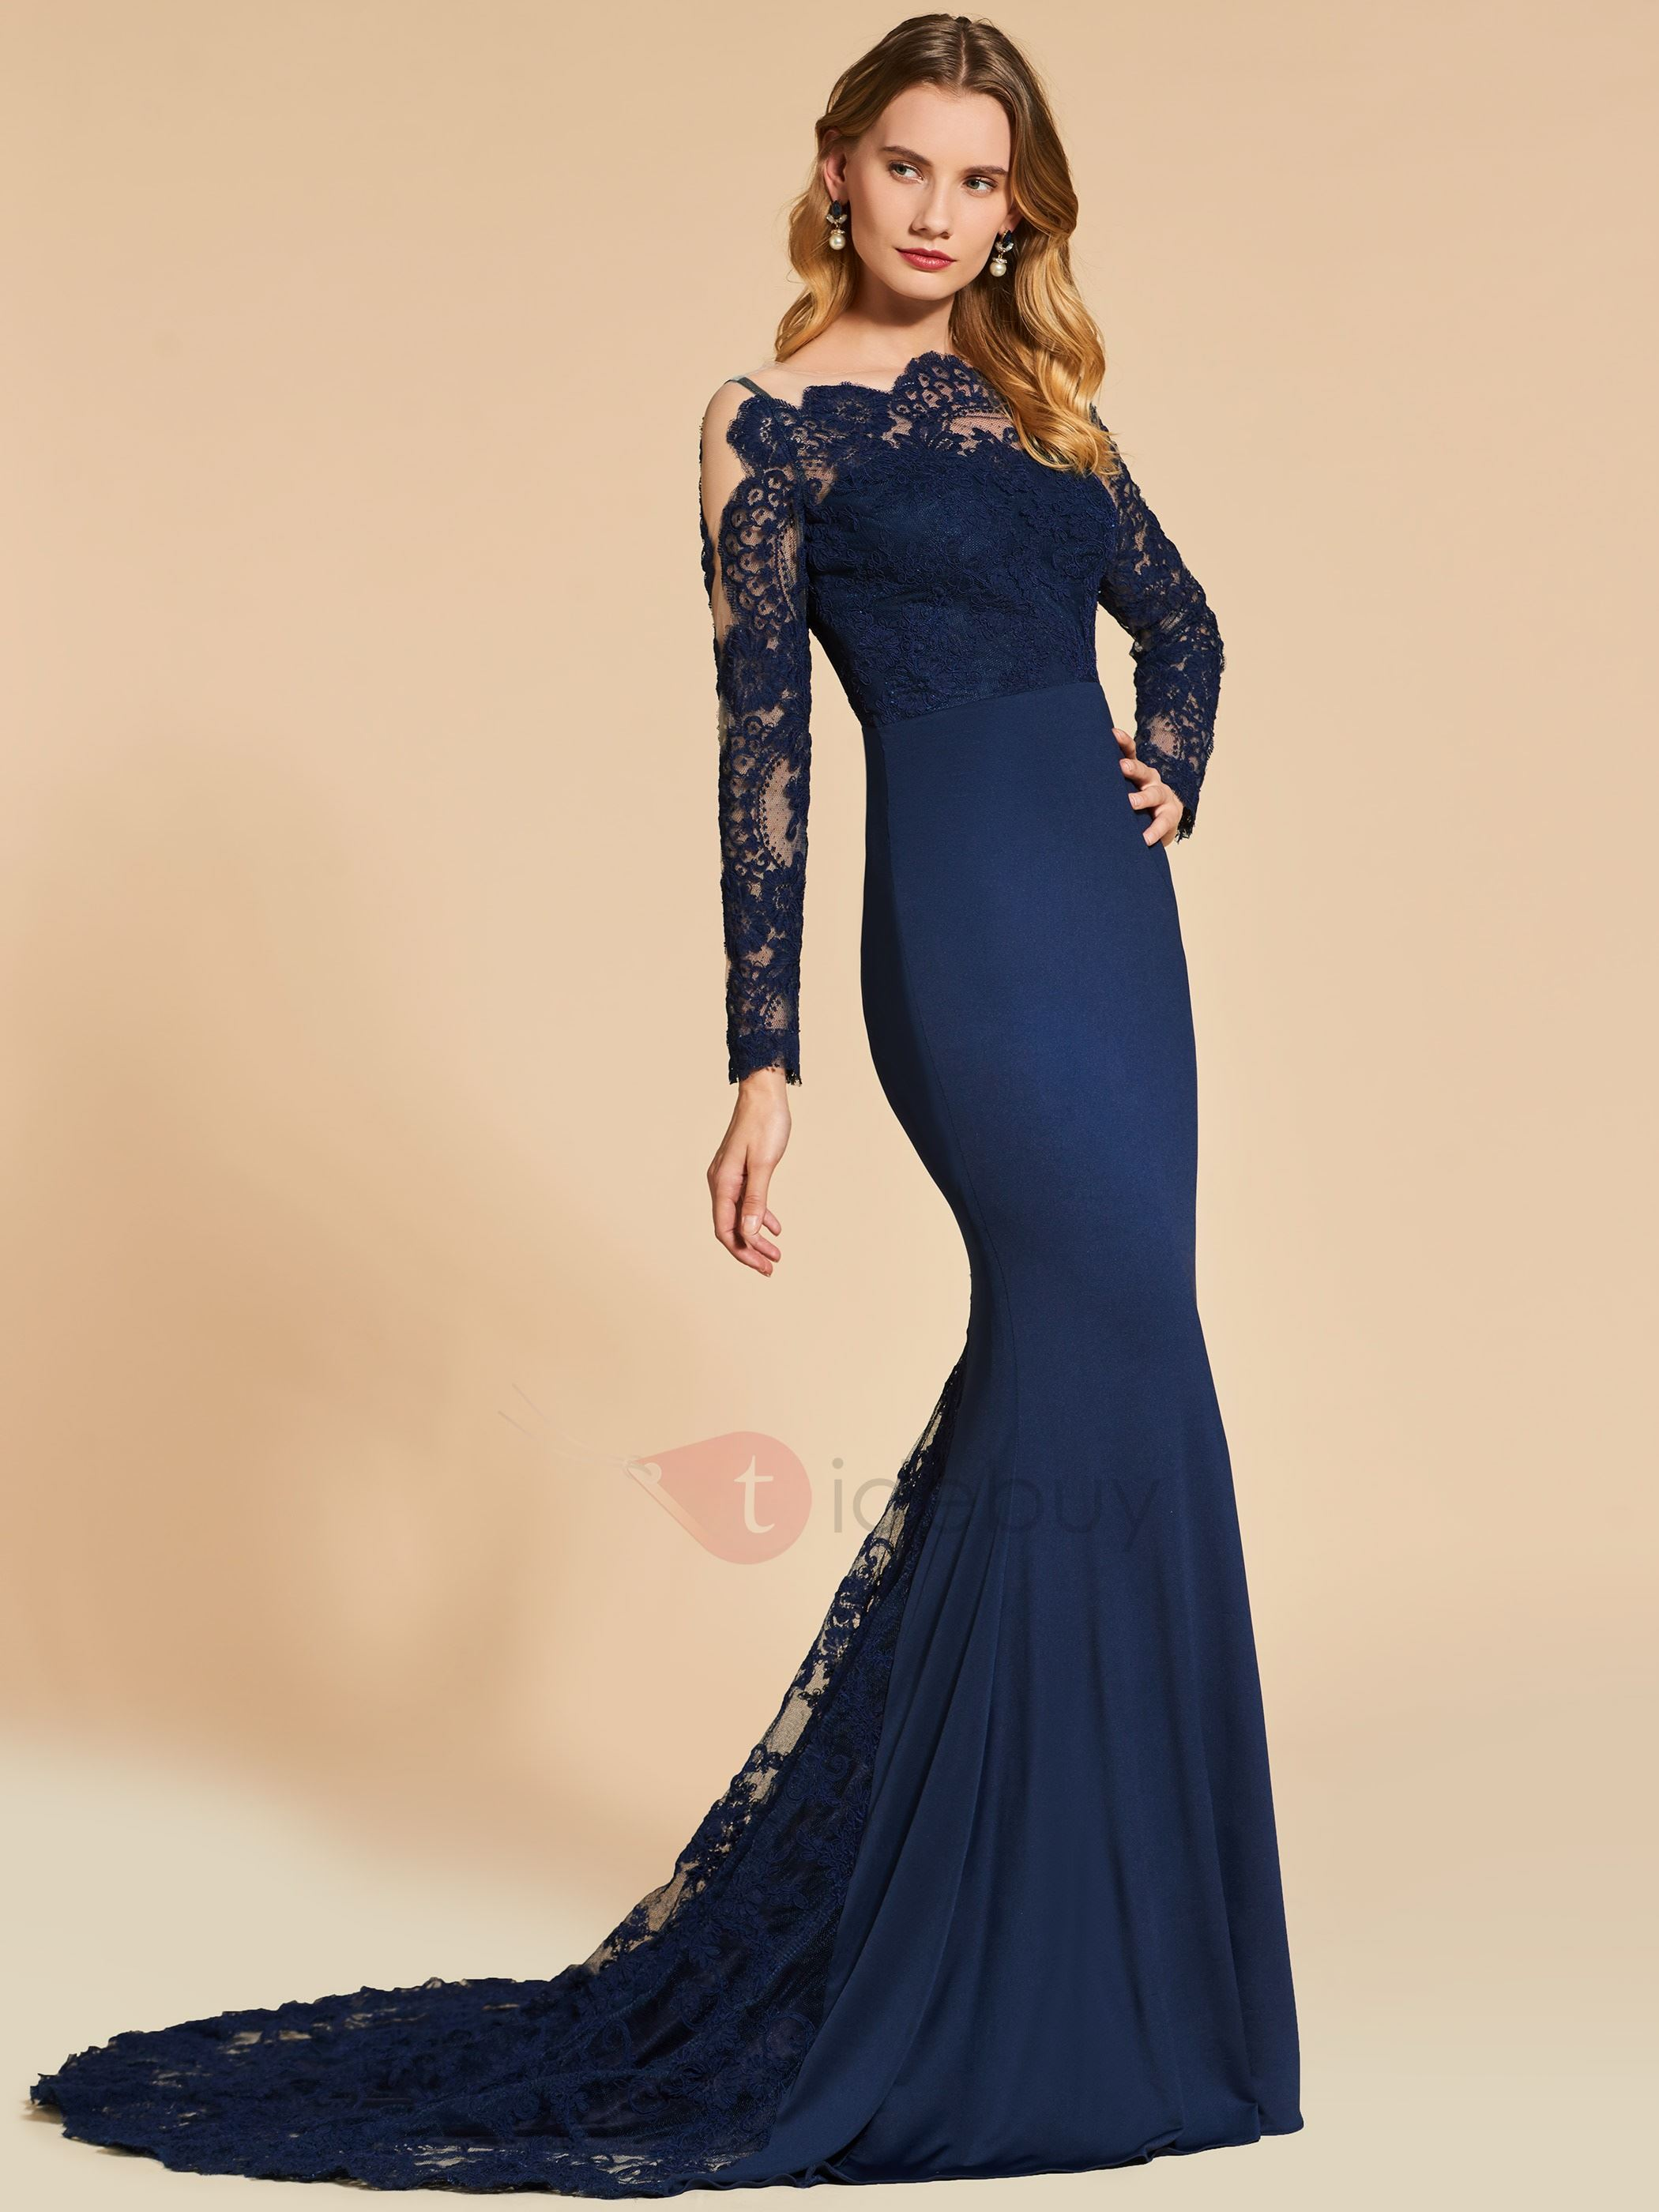 Scalloped-Edge Mermaid Long Sleeves Lace Evening Dress